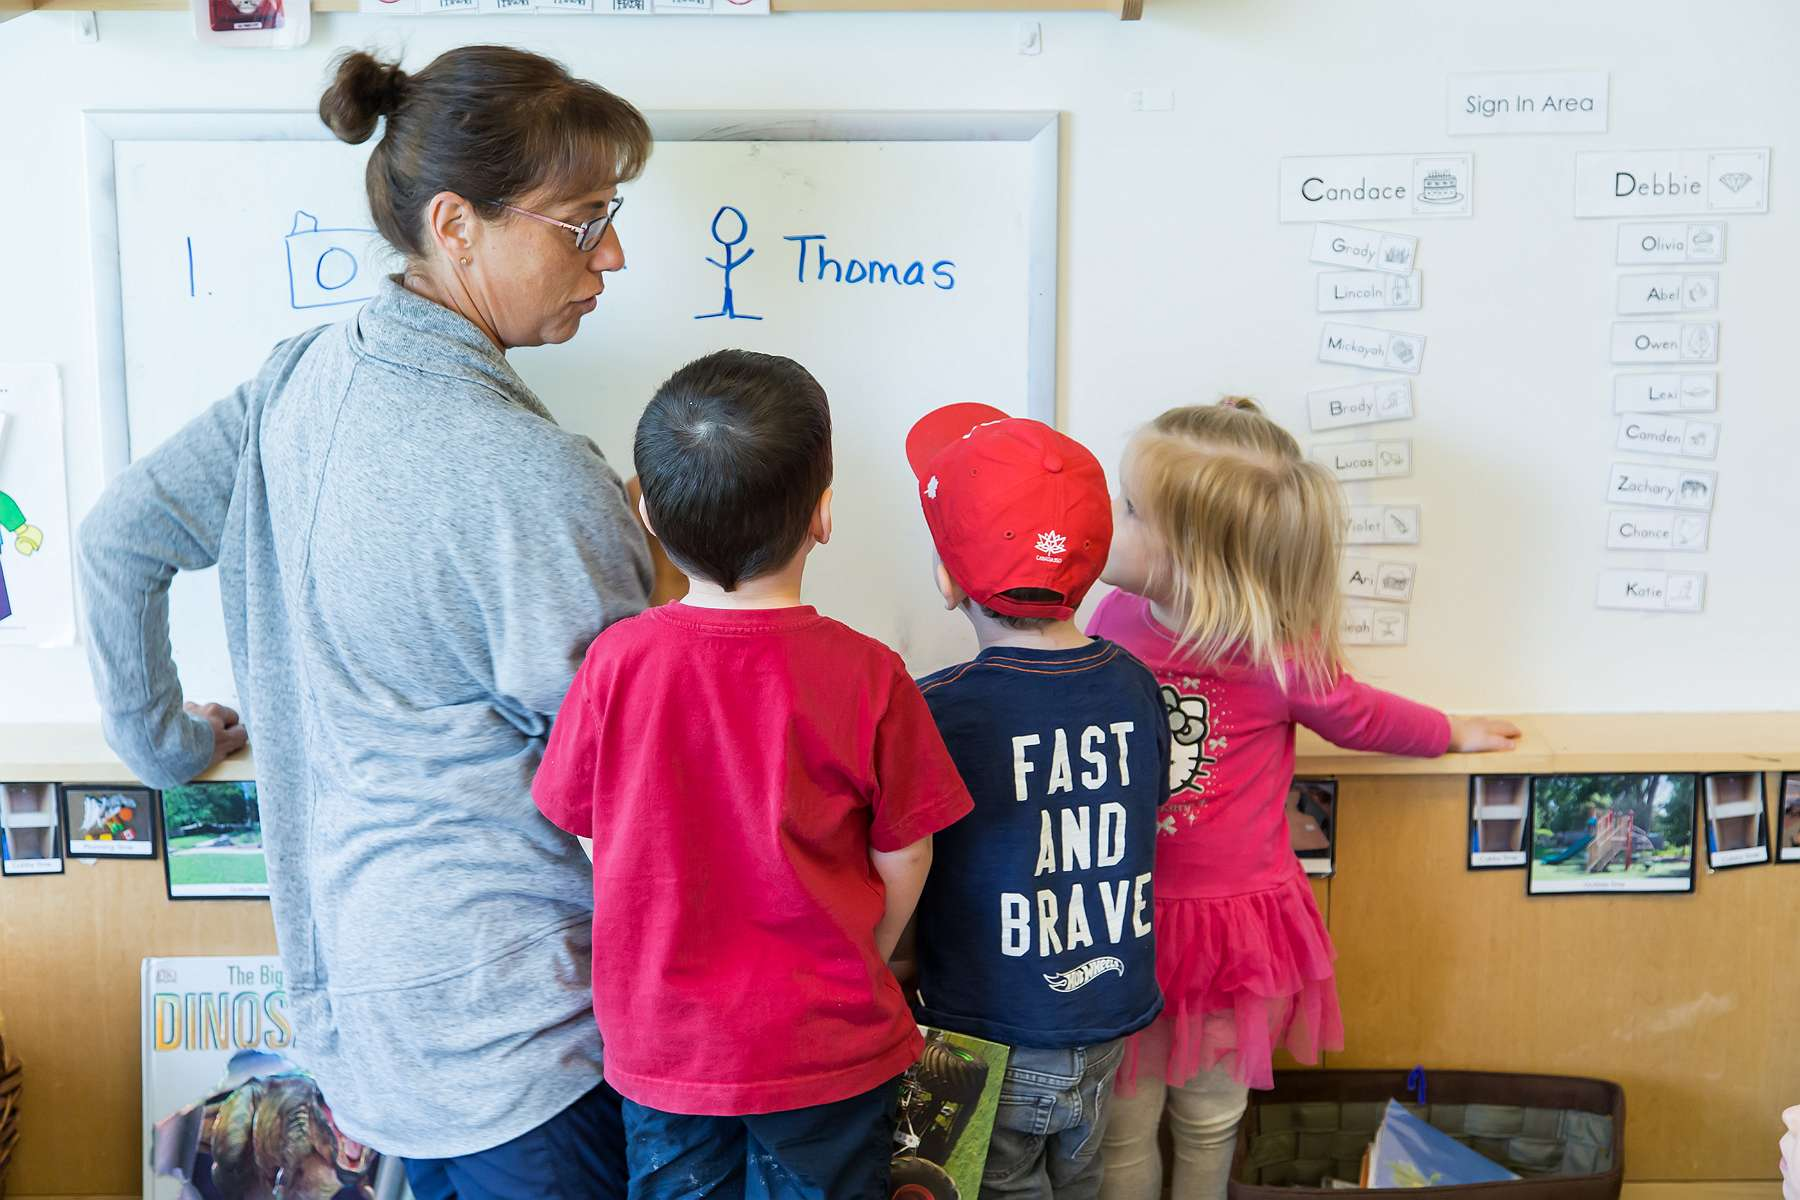 Image of educator interacting with three children at the whiteboard